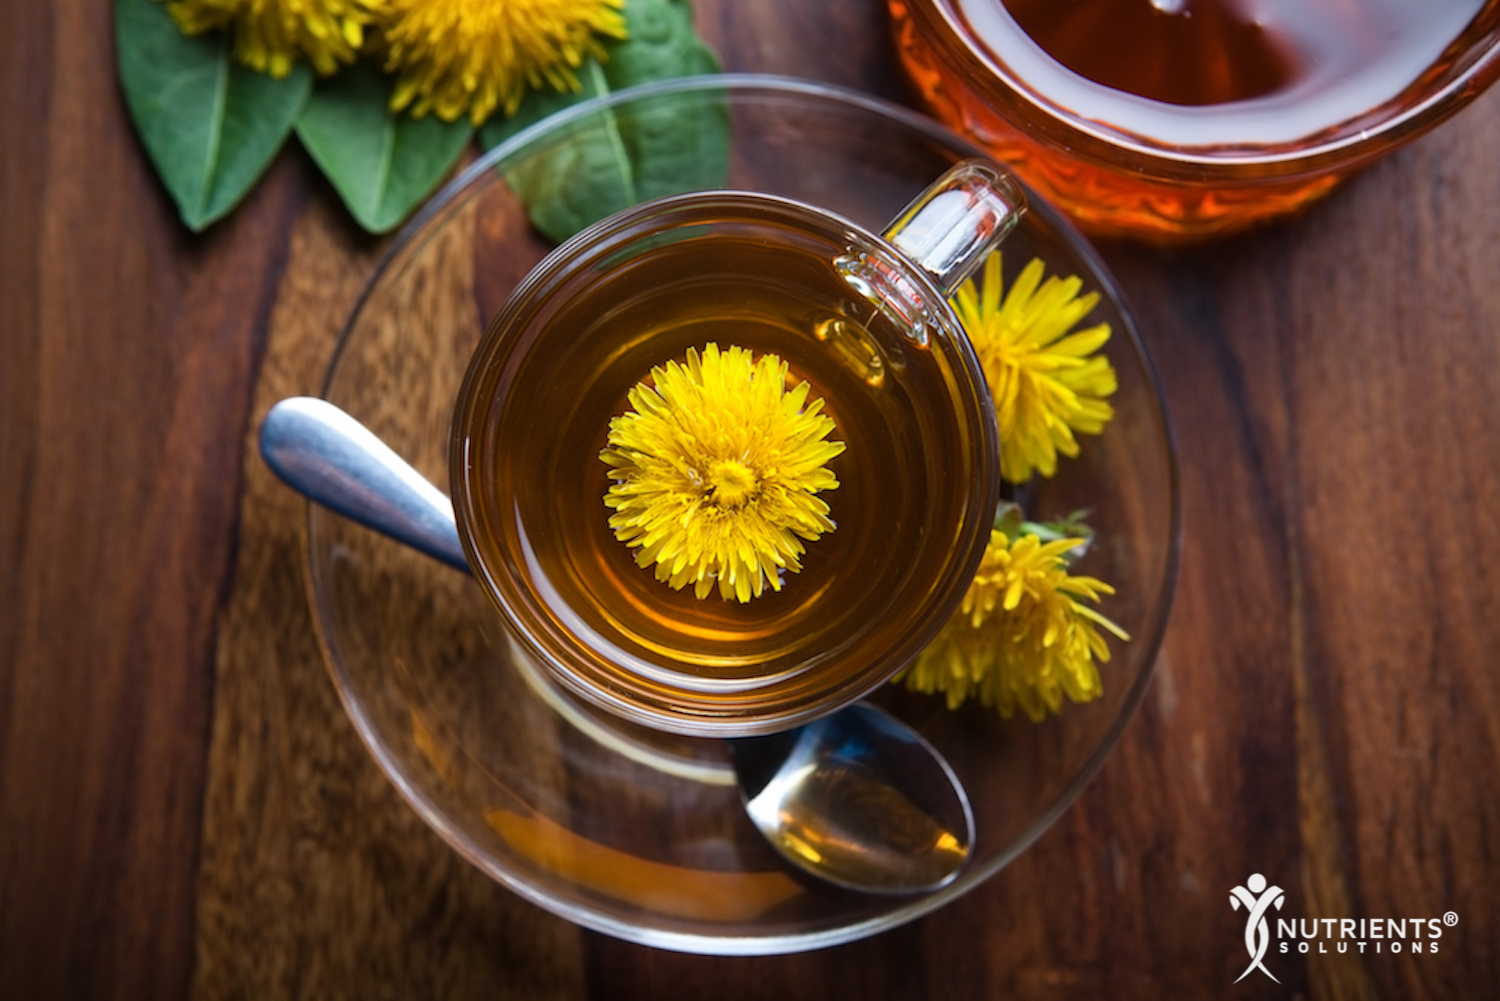 Dandelion Root - A Common Weed That Promotes Good Health